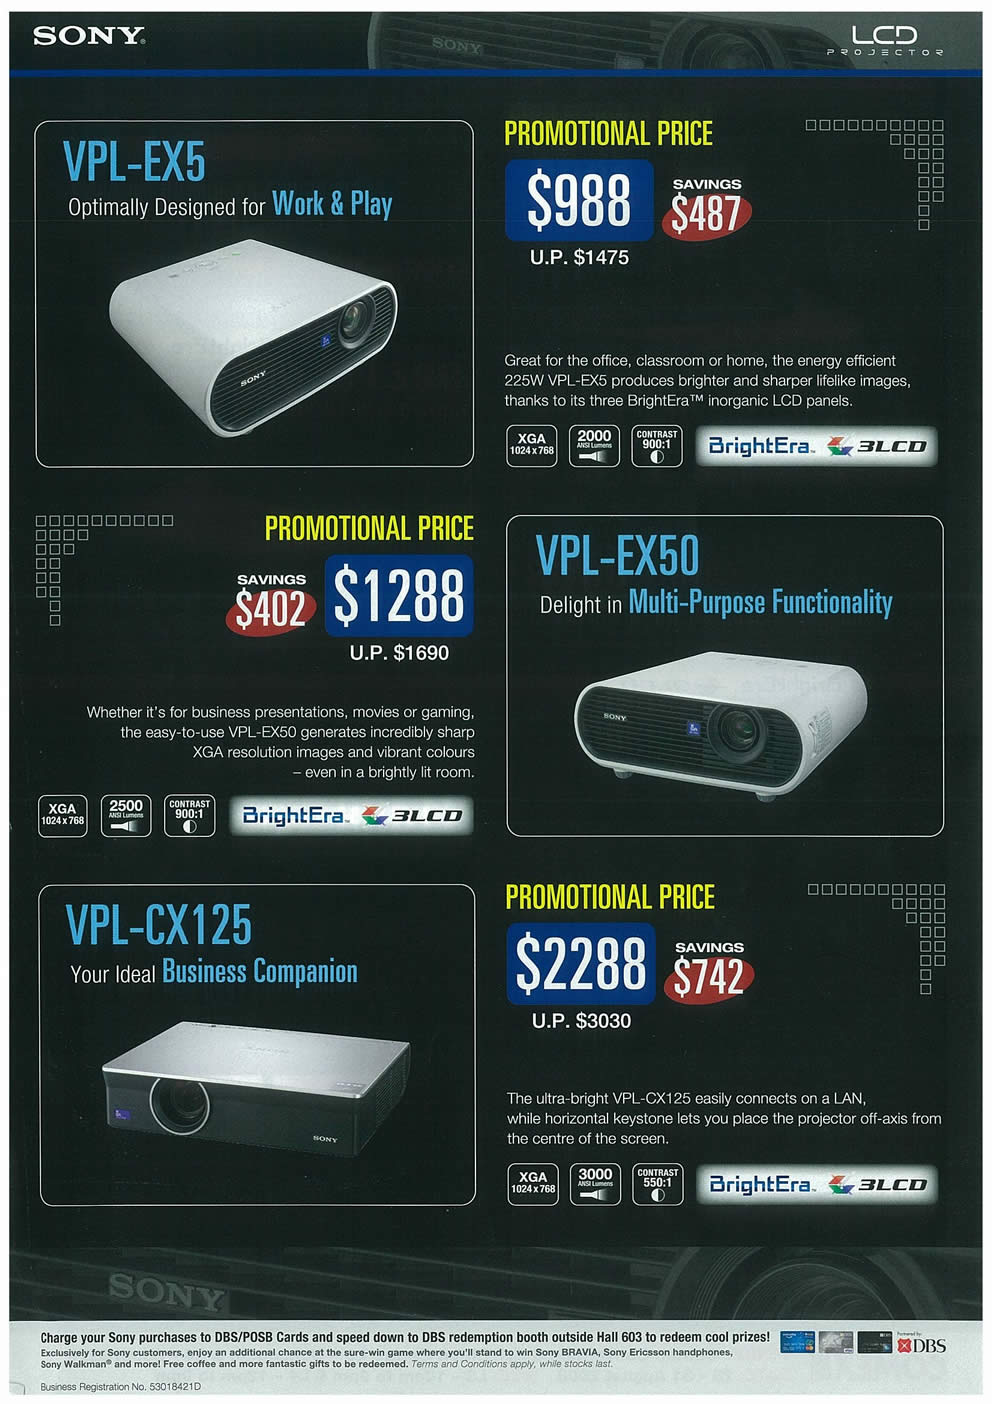 Comex 2008 price list image brochure of Sony LCD Projectors Page 2